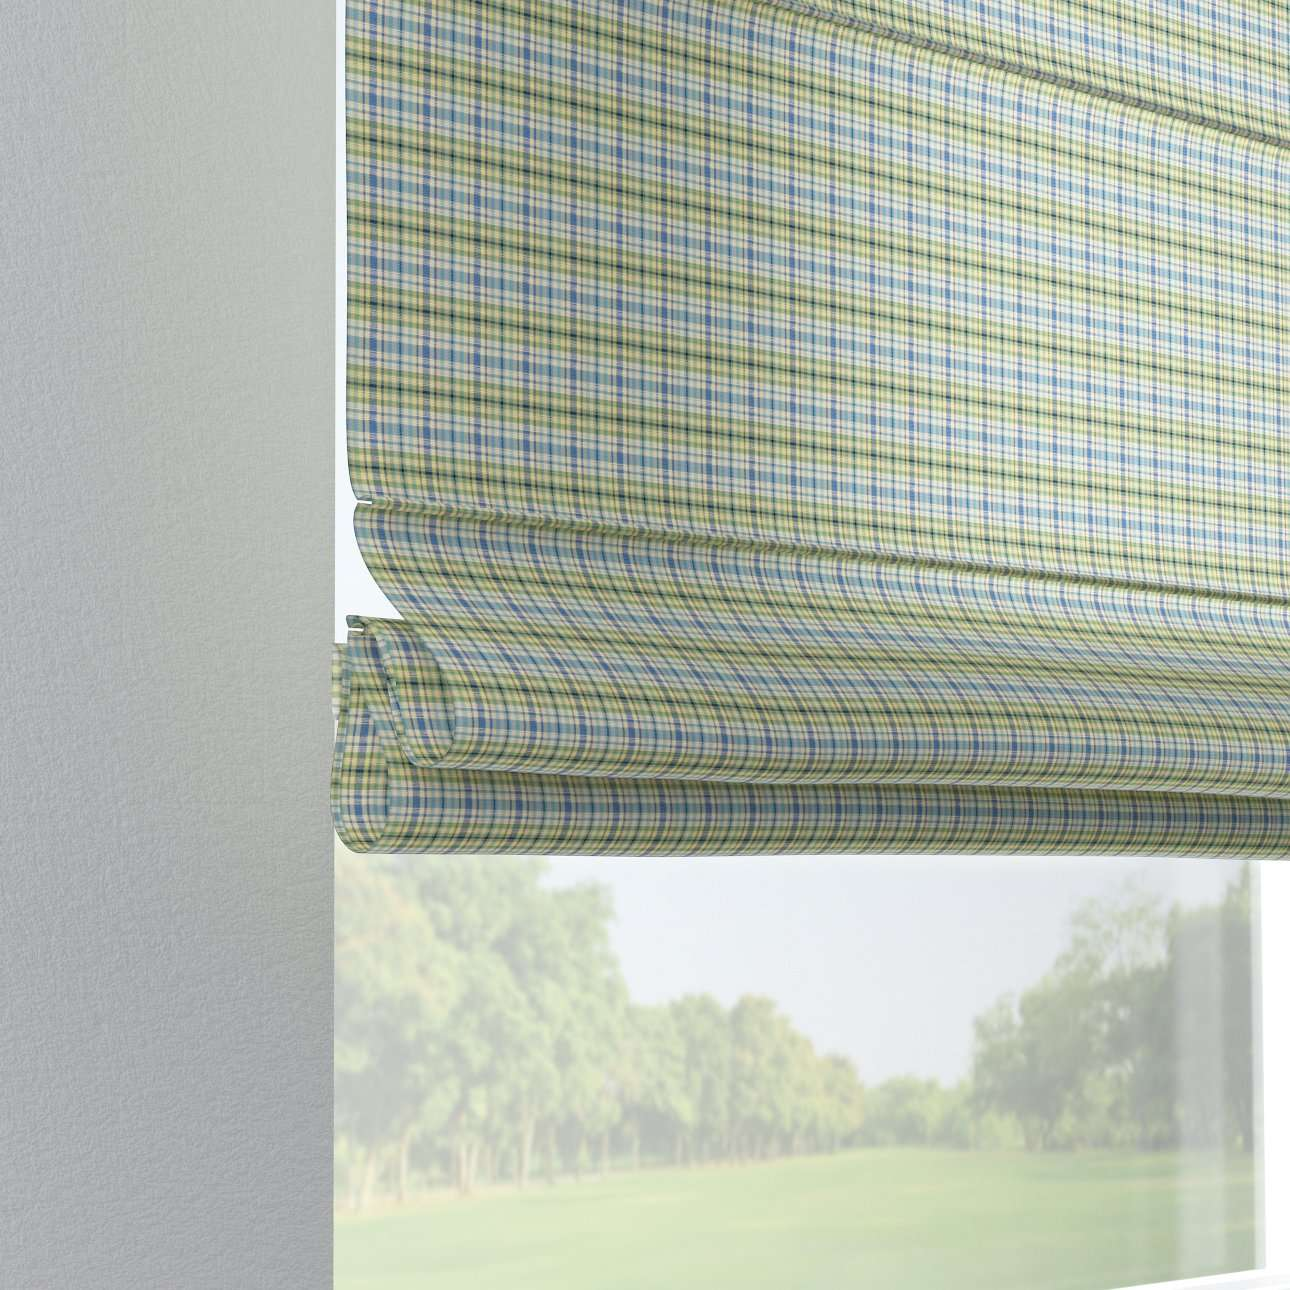 Verona tab top roman blind 80 × 170 cm (31.5 × 67 inch) in collection Bristol, fabric: 126-69